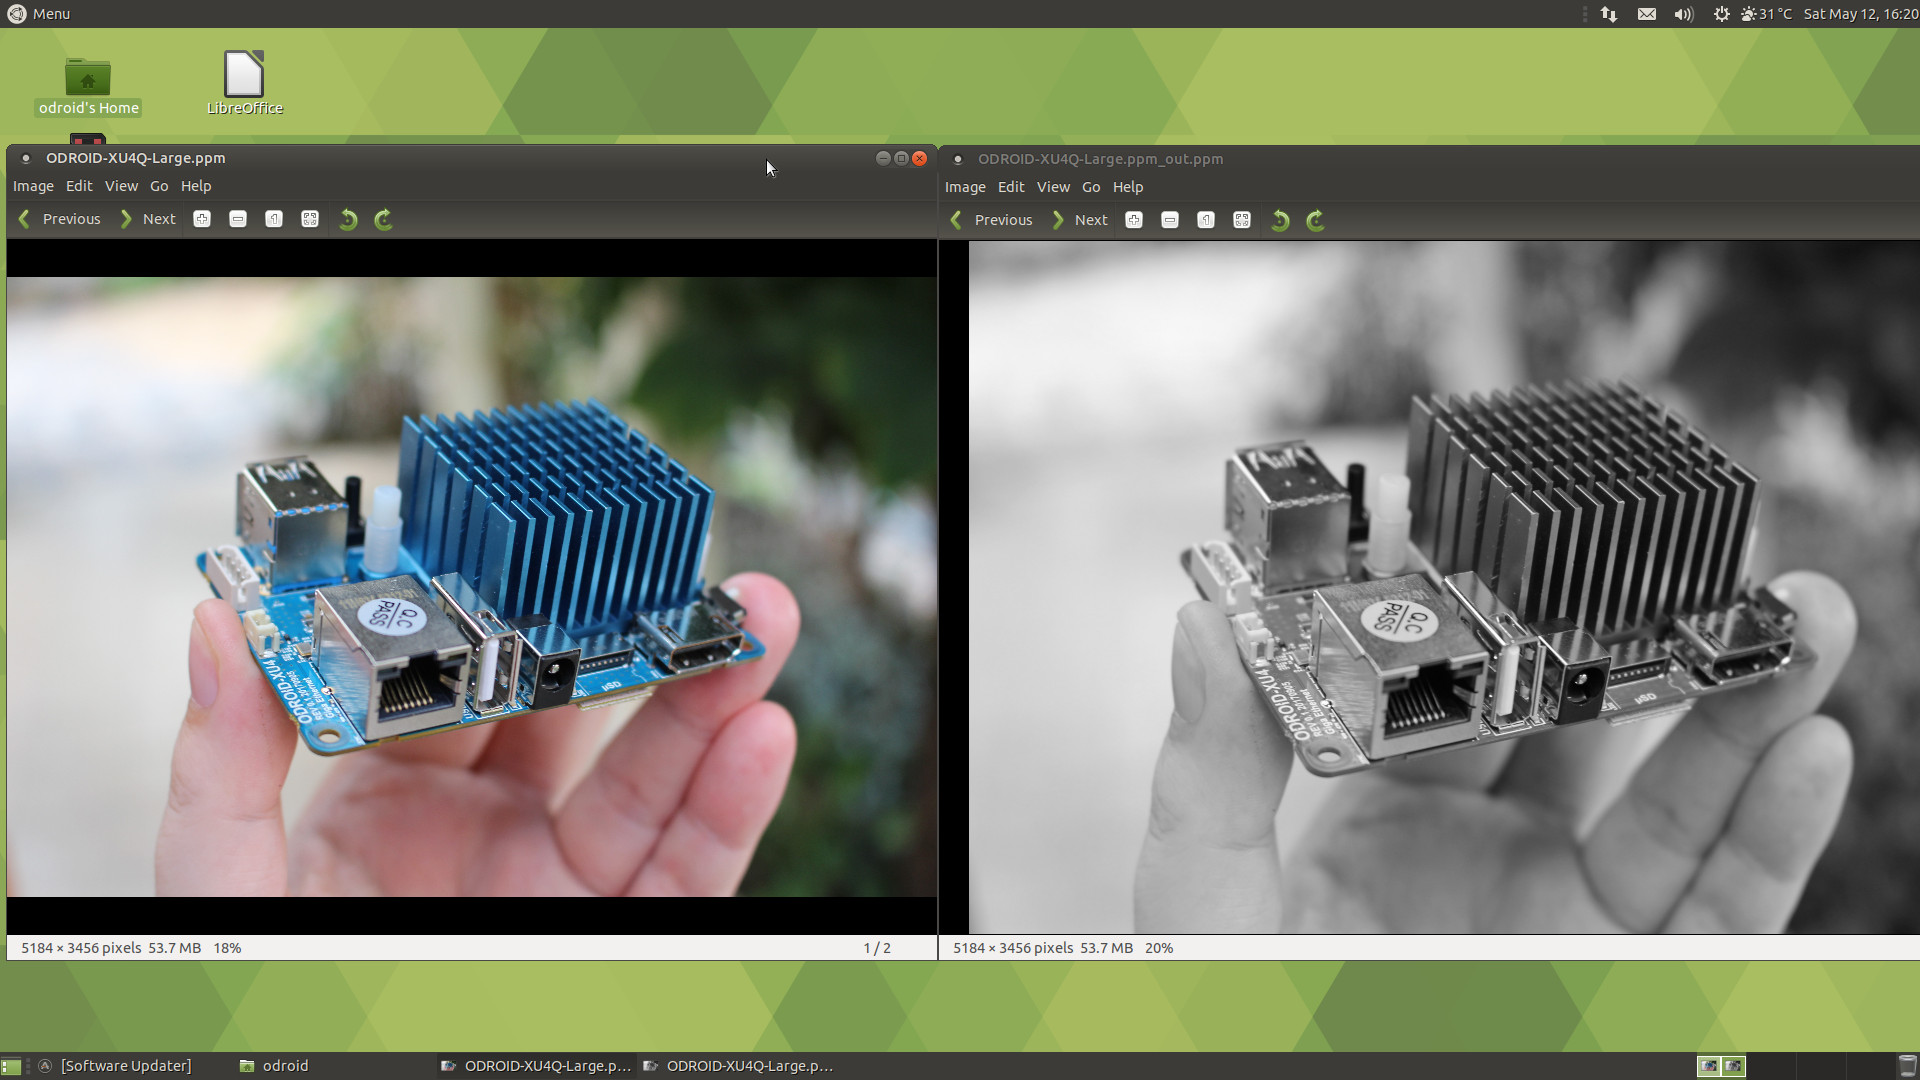 Getting Started With OpenCL: Using The ODROID-XU4 | ODROID Magazine